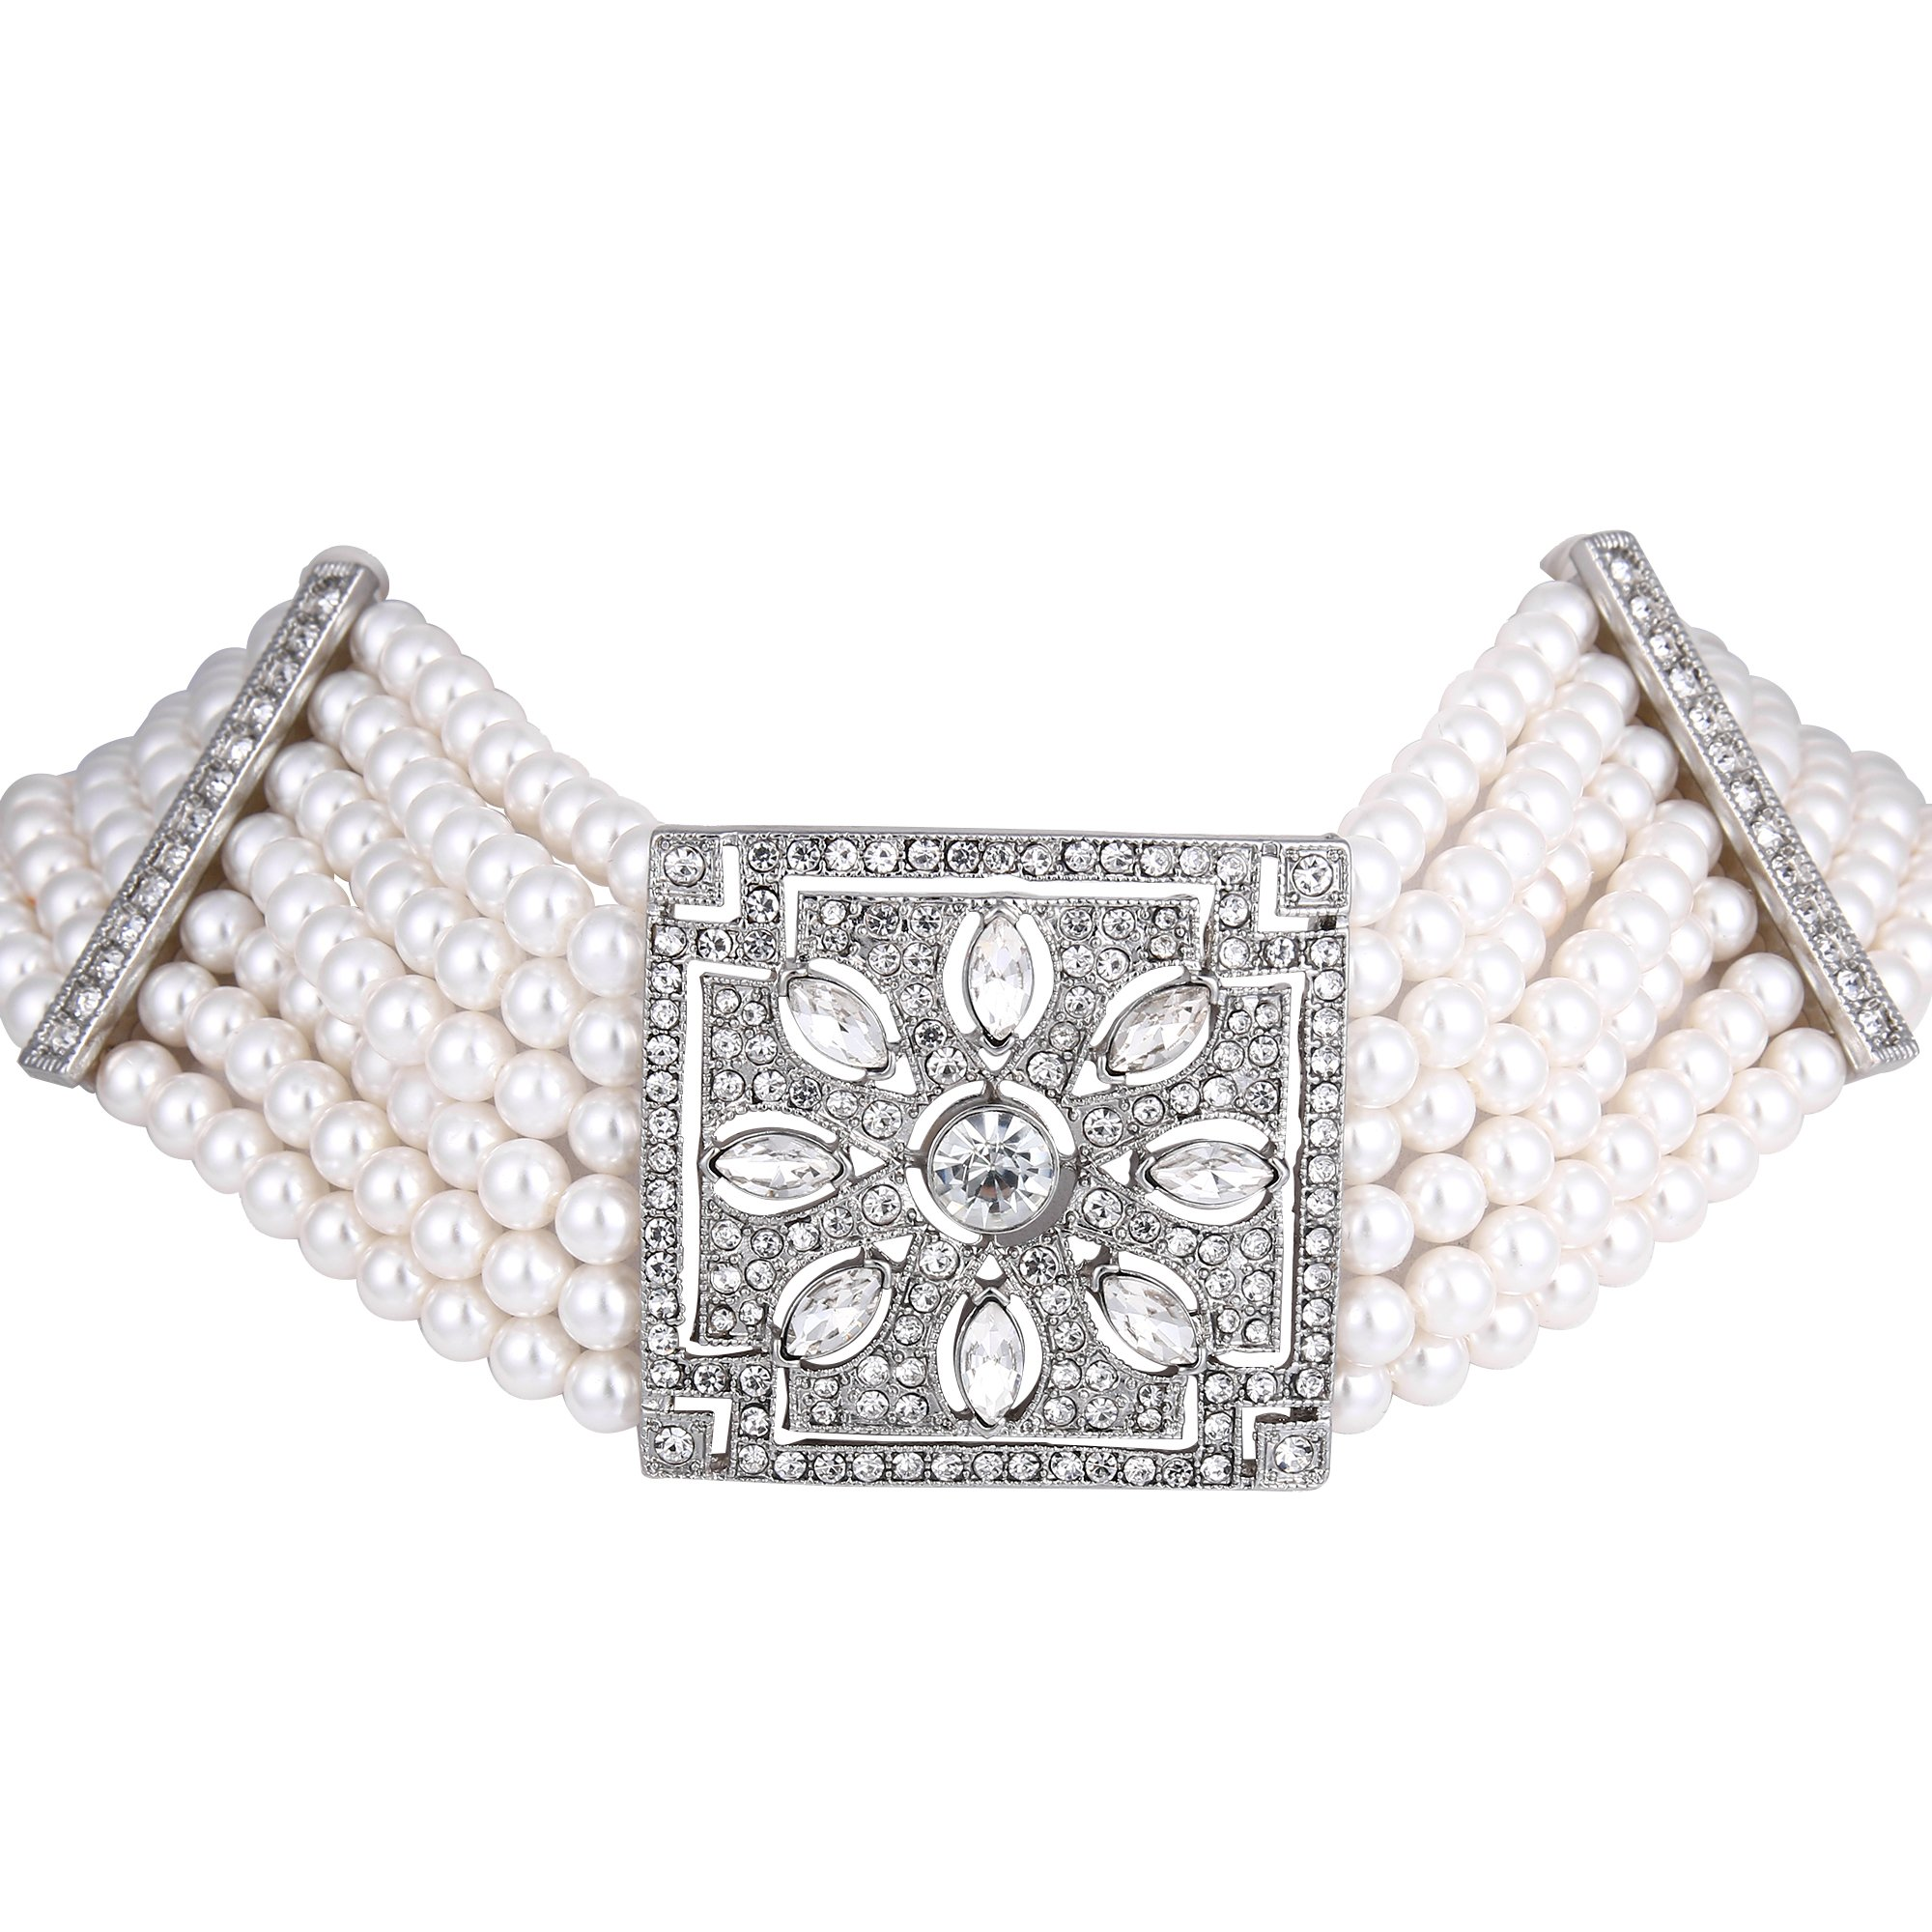 BriLove Women's Wedding Bridal Crystal Simulated Pearl Multi-Layer Art Deco Strand Necklace Clear Silver-Tone